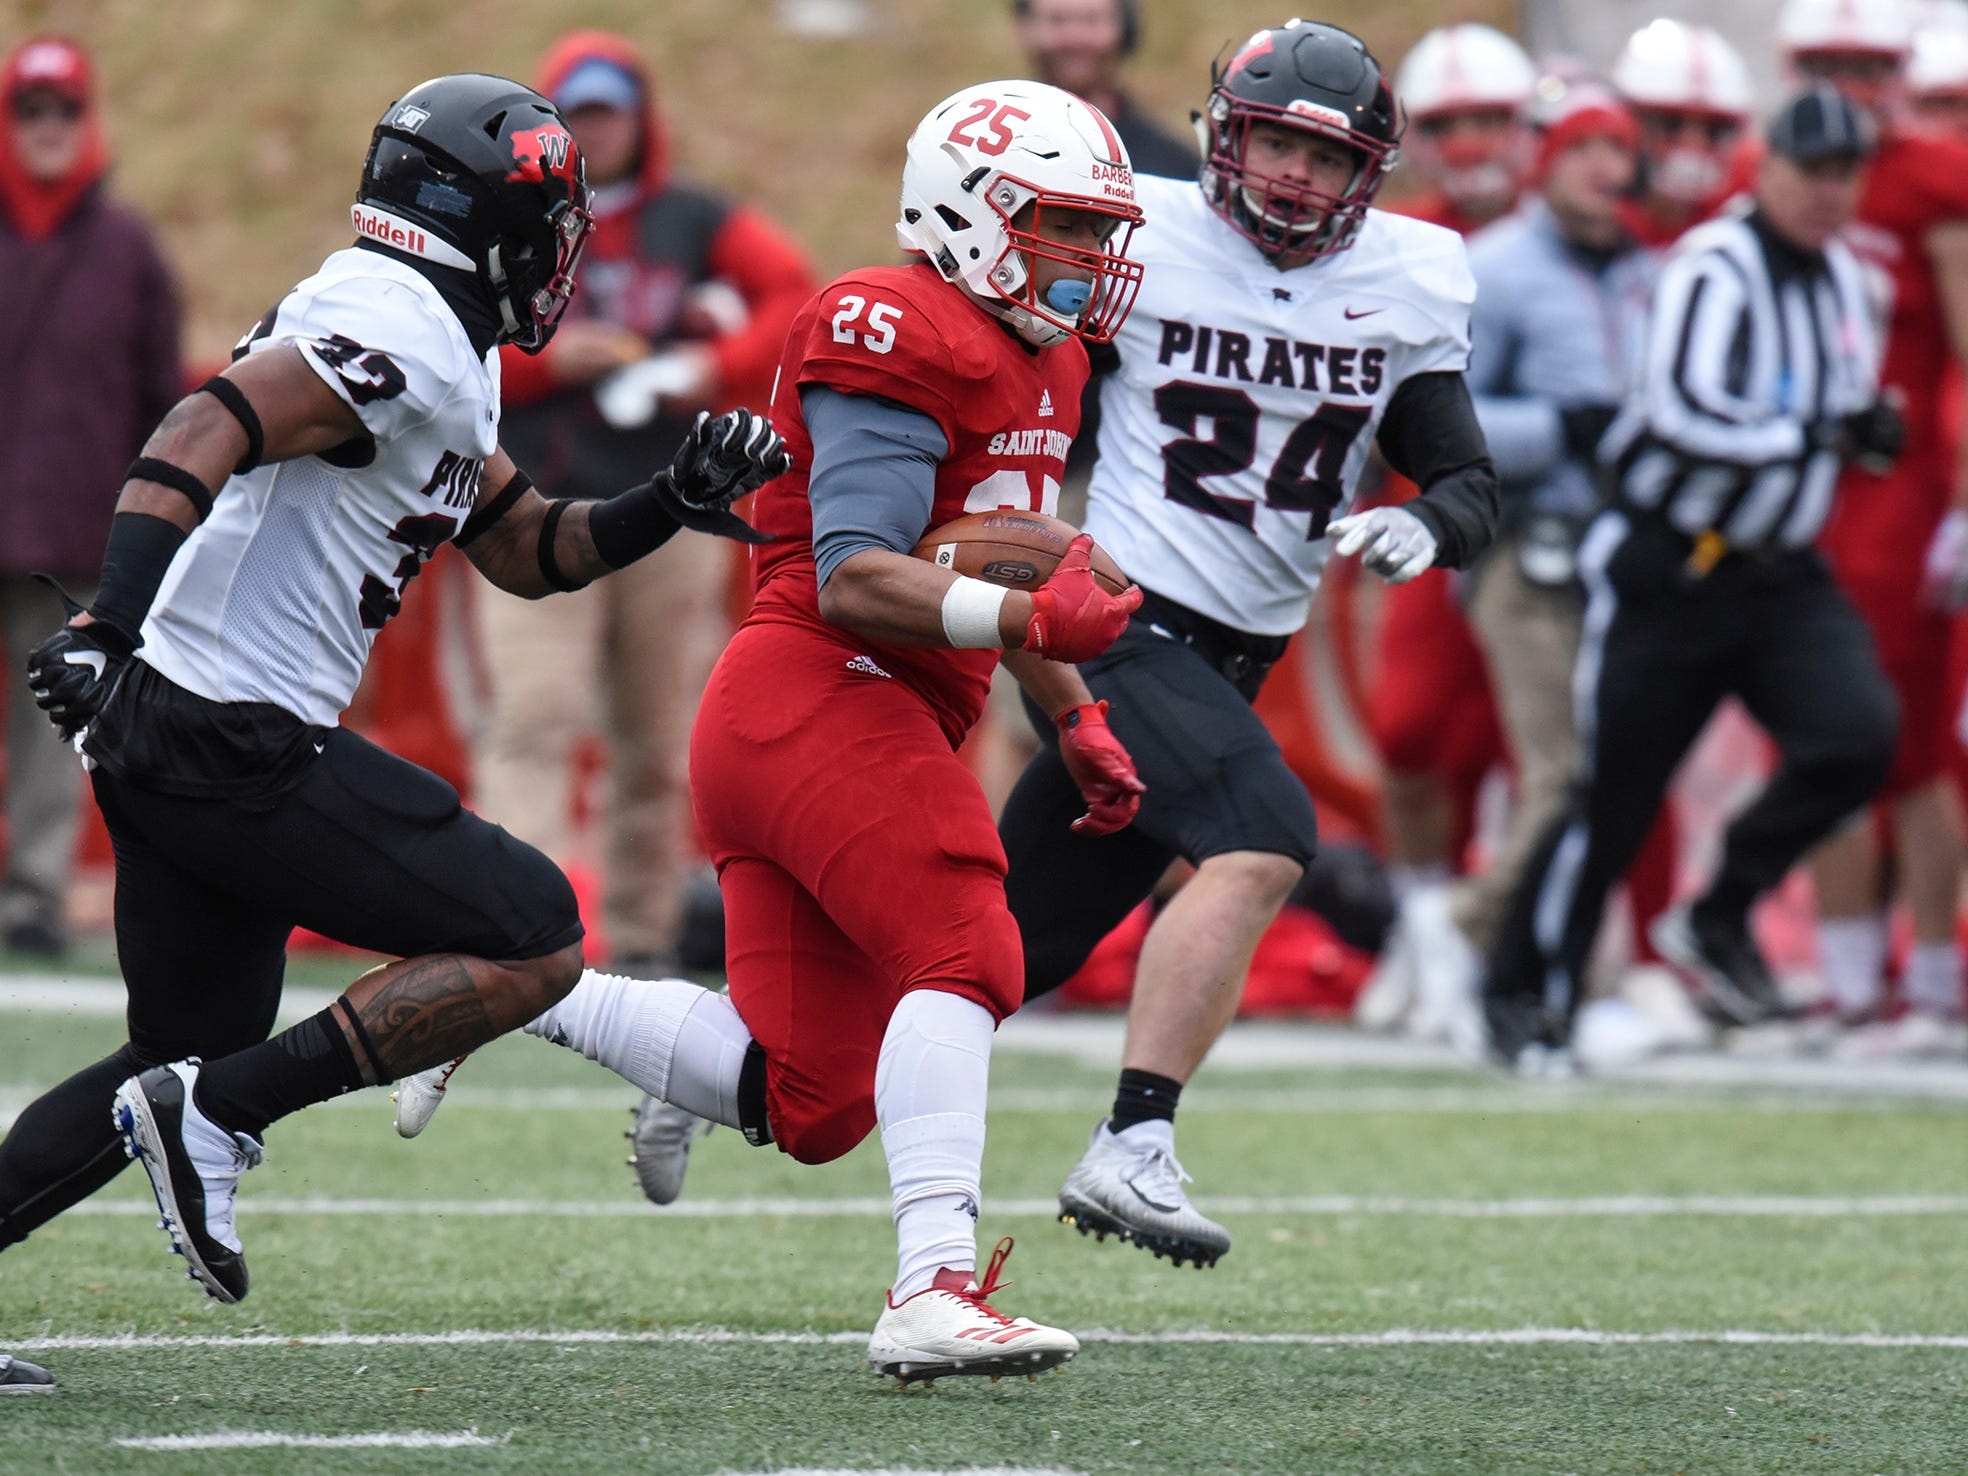 Kai Barber of St. John's rushes with the ball during the Saturday, Nov. 24, game against Whitworth at Clemens Stadium in Collegeville.